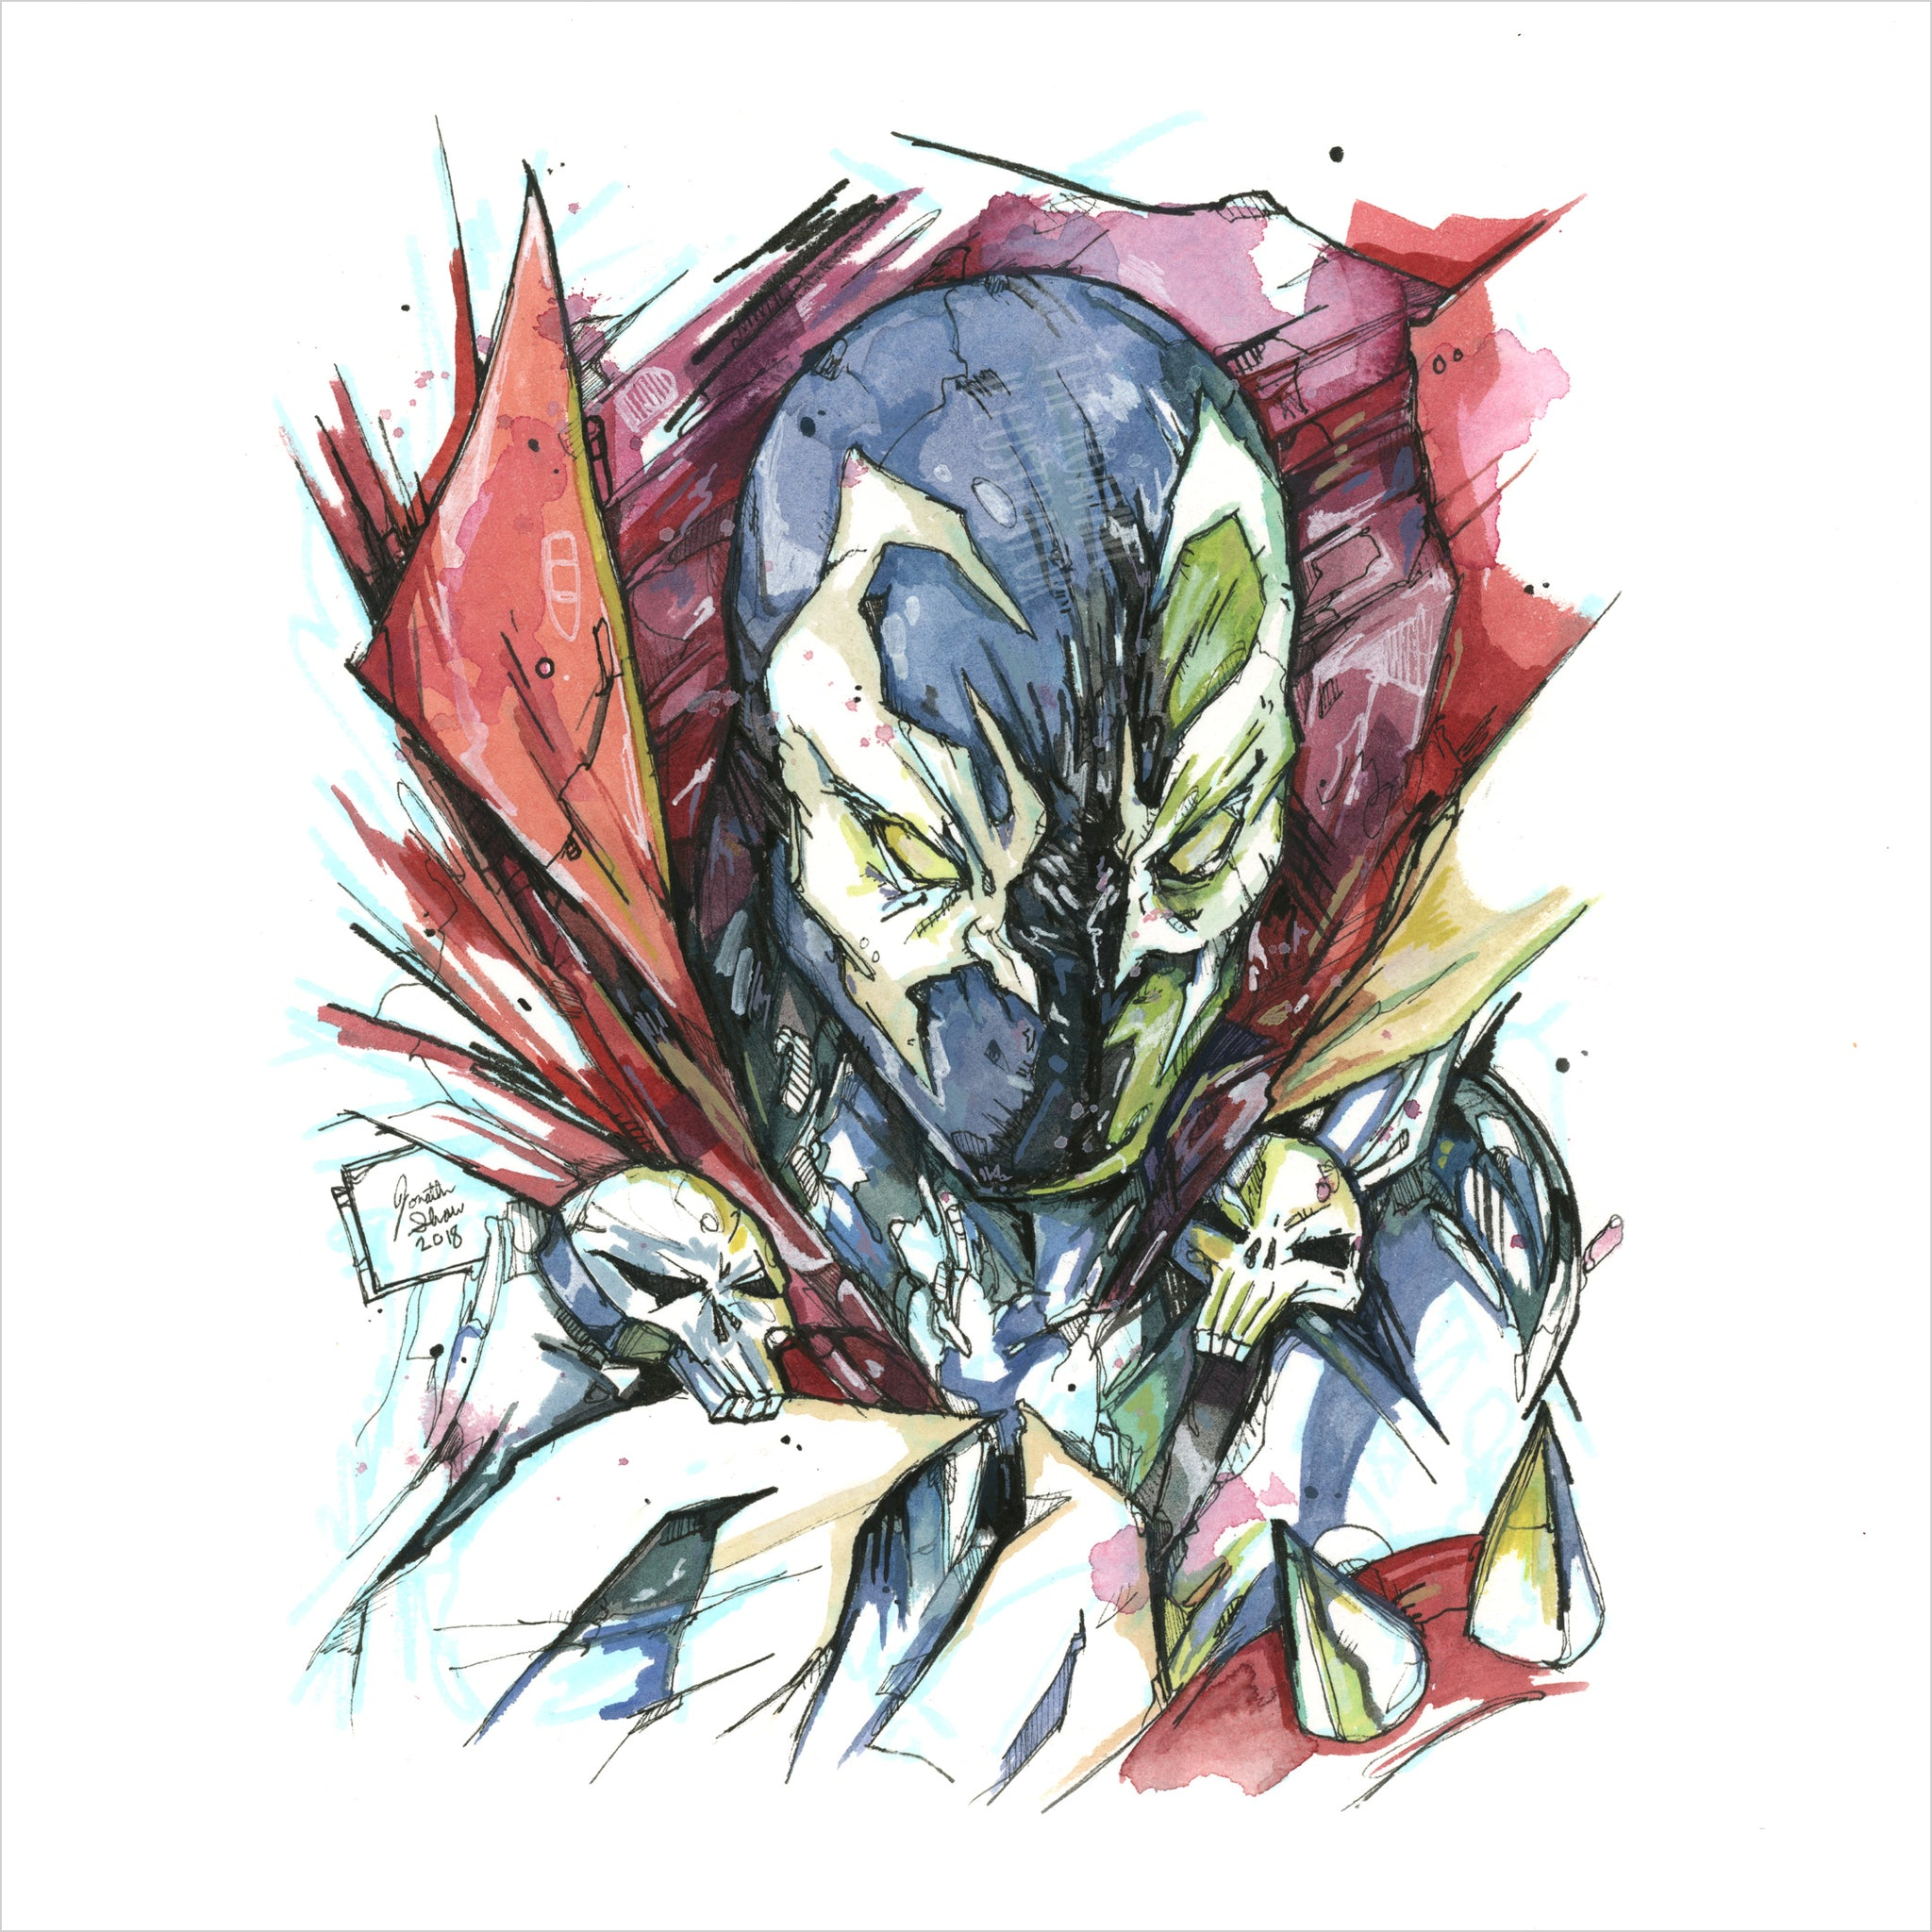 """Spawn"" - 8x10 Reproduction Print"